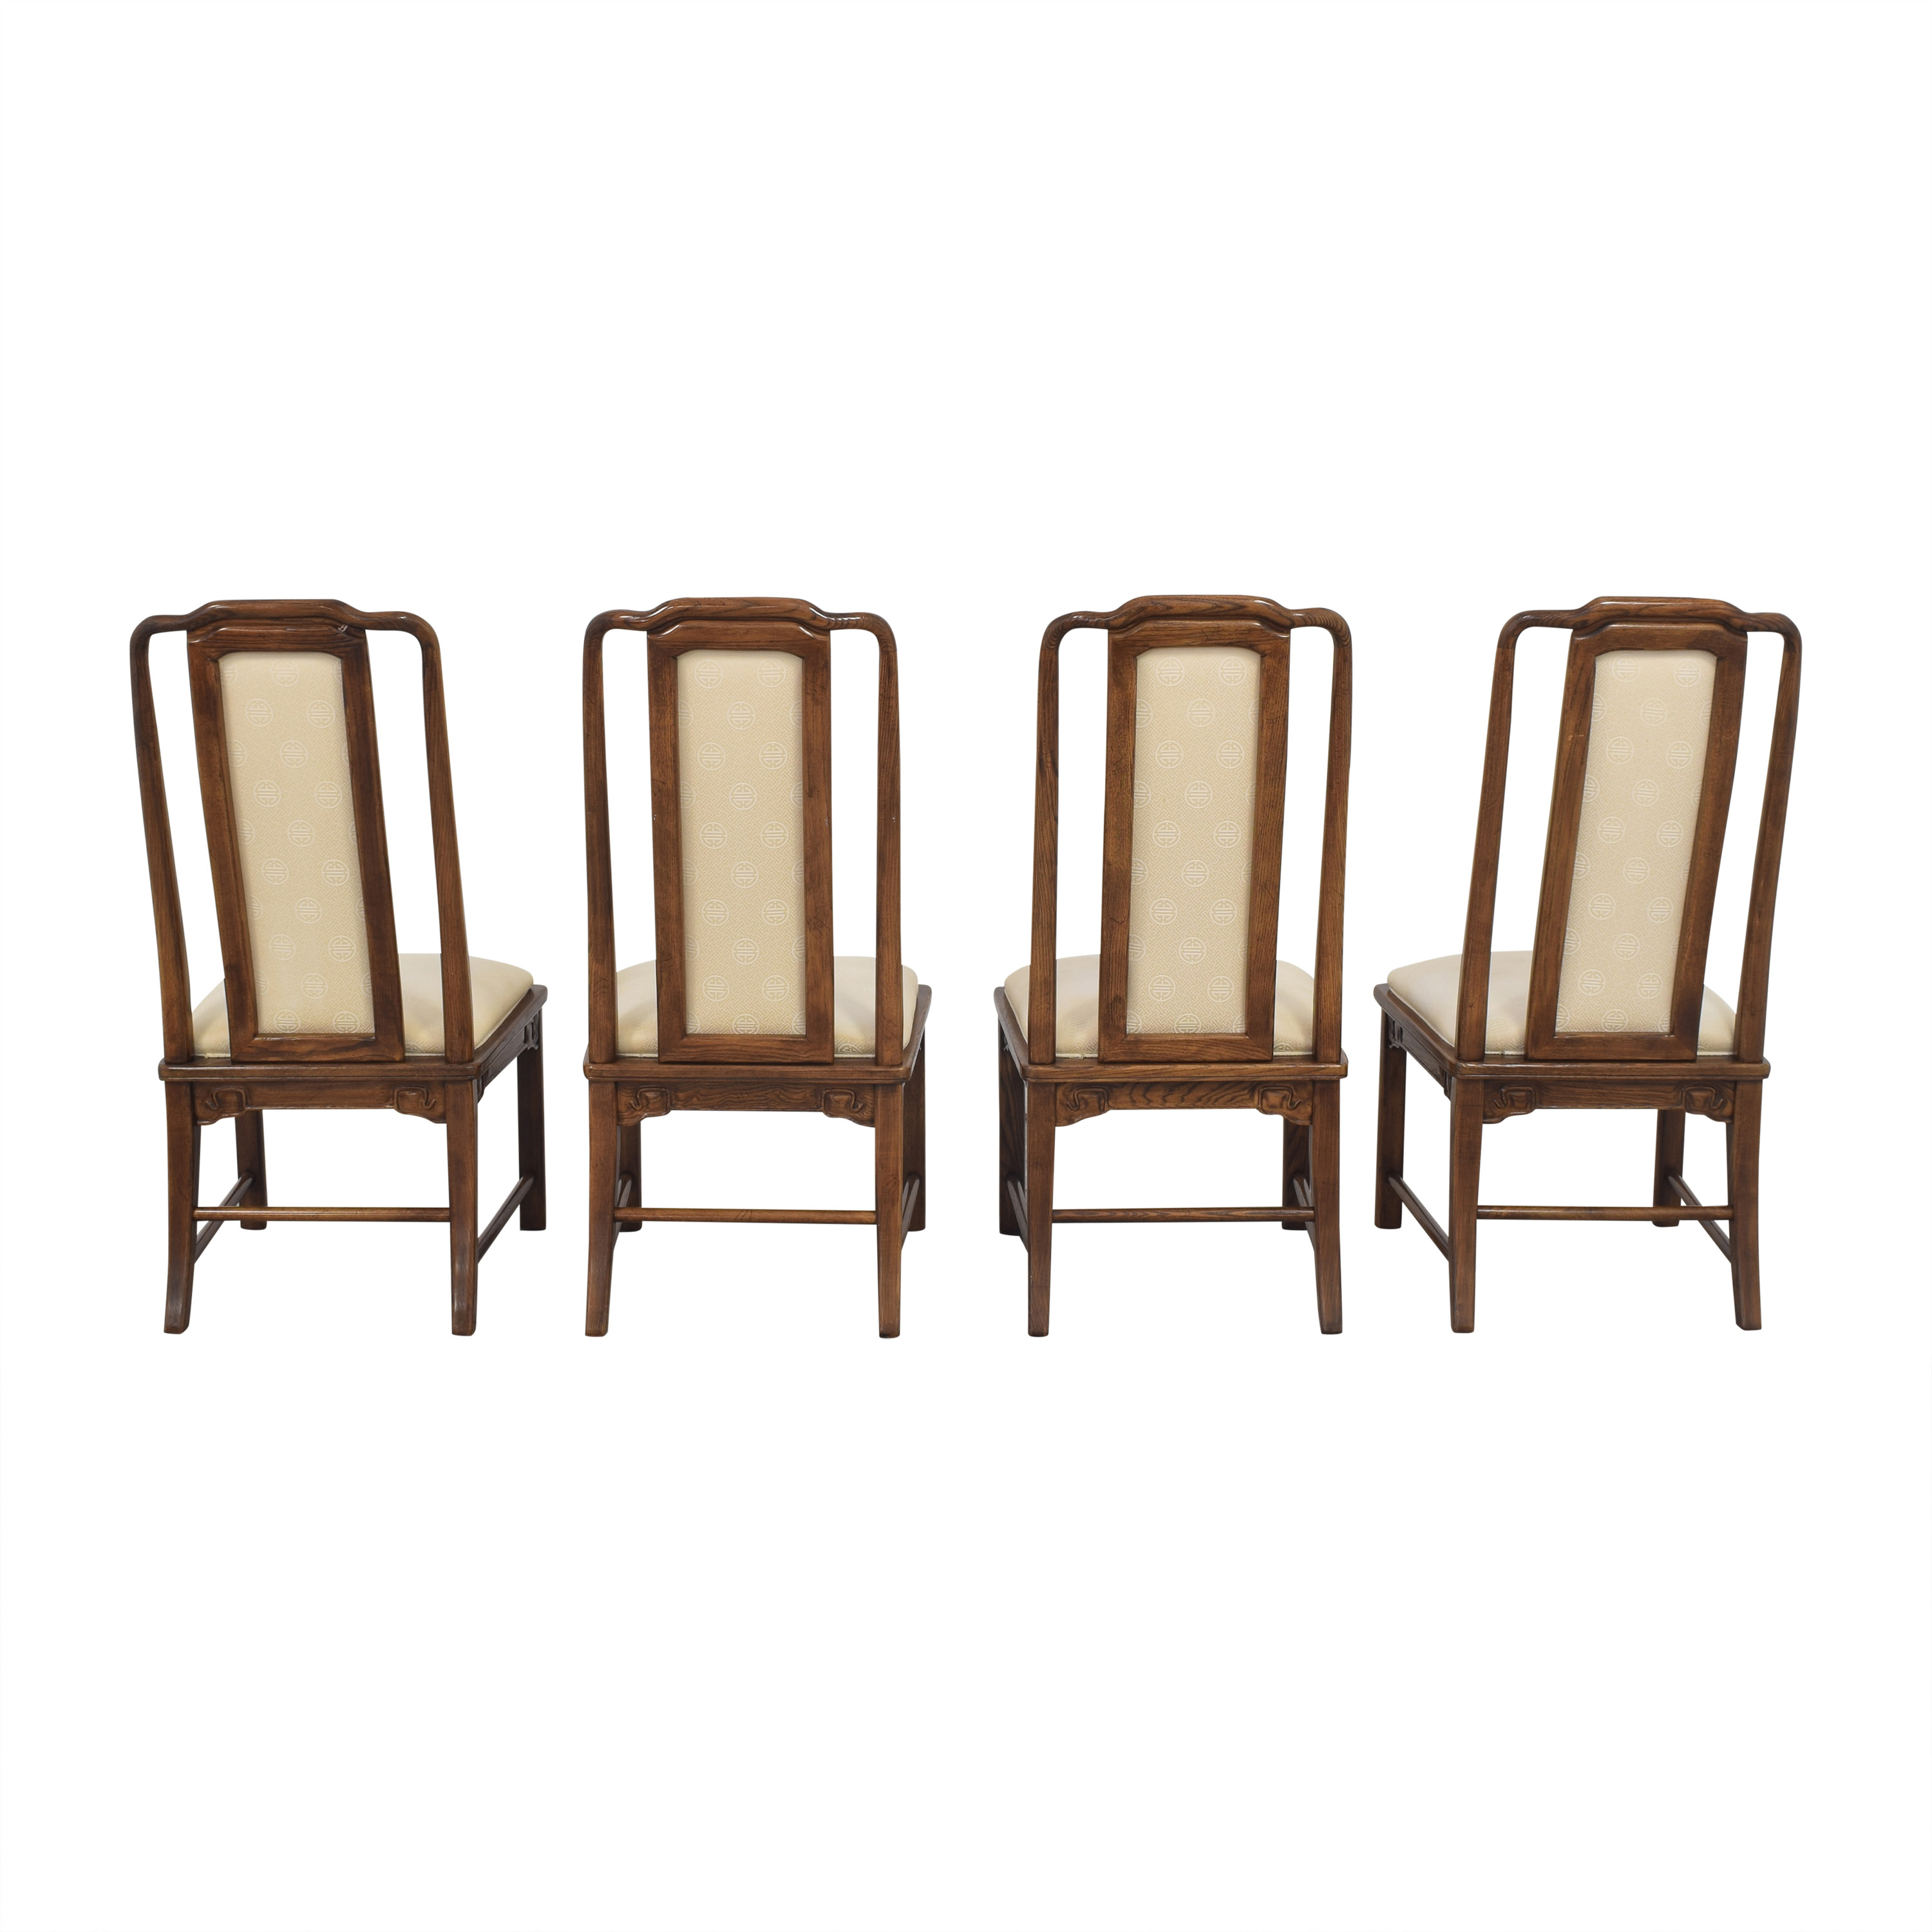 Unique Furniture Makers Unique Furniture Makers High Back Dining Chairs ct